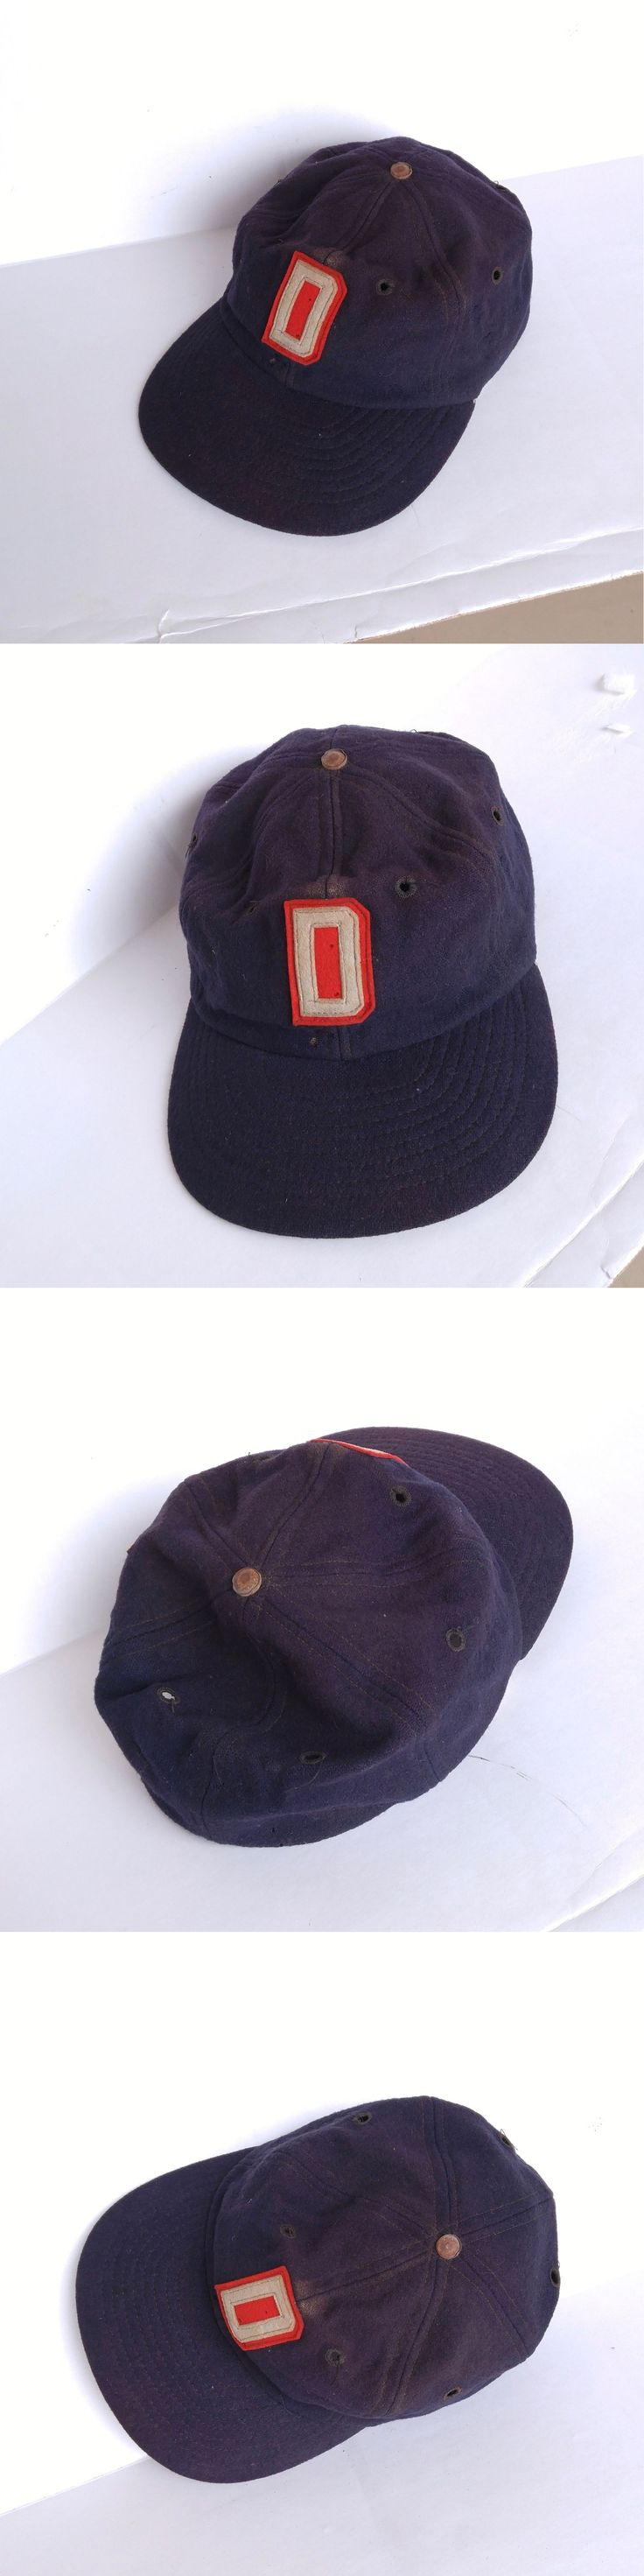 Hats and Headwear 159057: Antique Vintage 1940S-50S D Emblem Blue Wool Fitted Baseball Cap Leather Band -> BUY IT NOW ONLY: $36.99 on eBay!